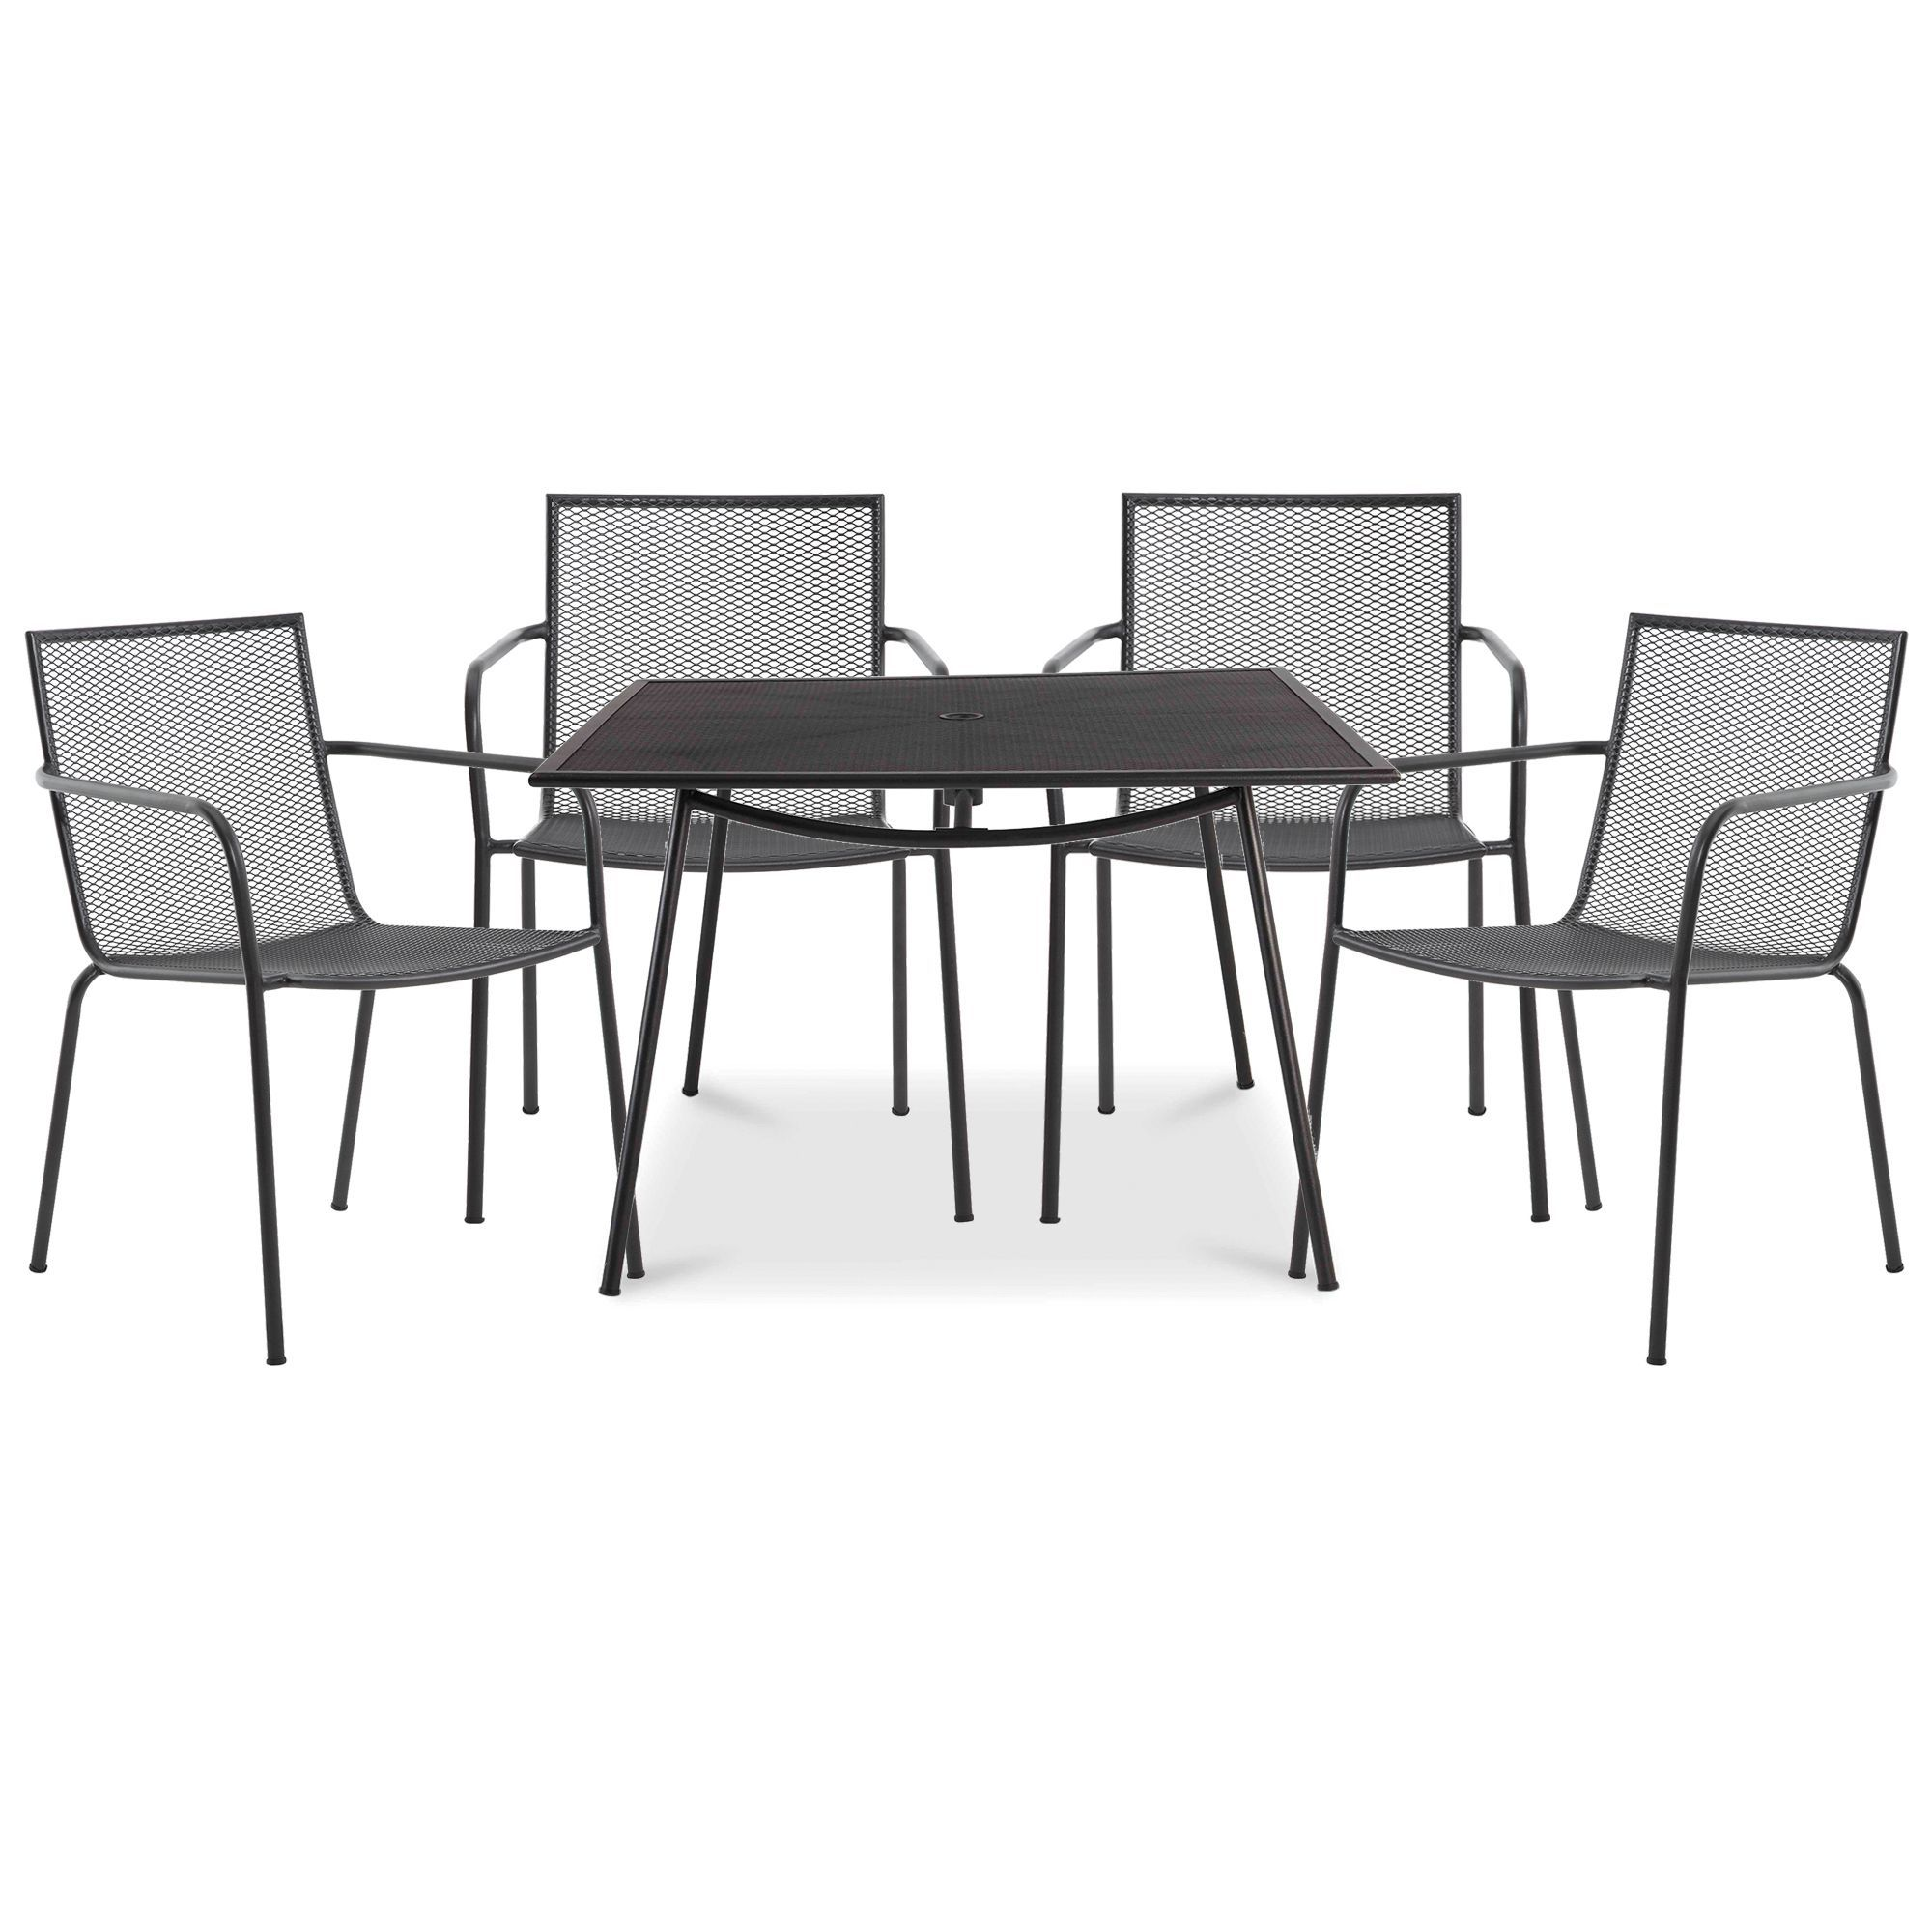 Kitchen Stools Adelaide: Adelaide Metal 4 Seater Armchair Set